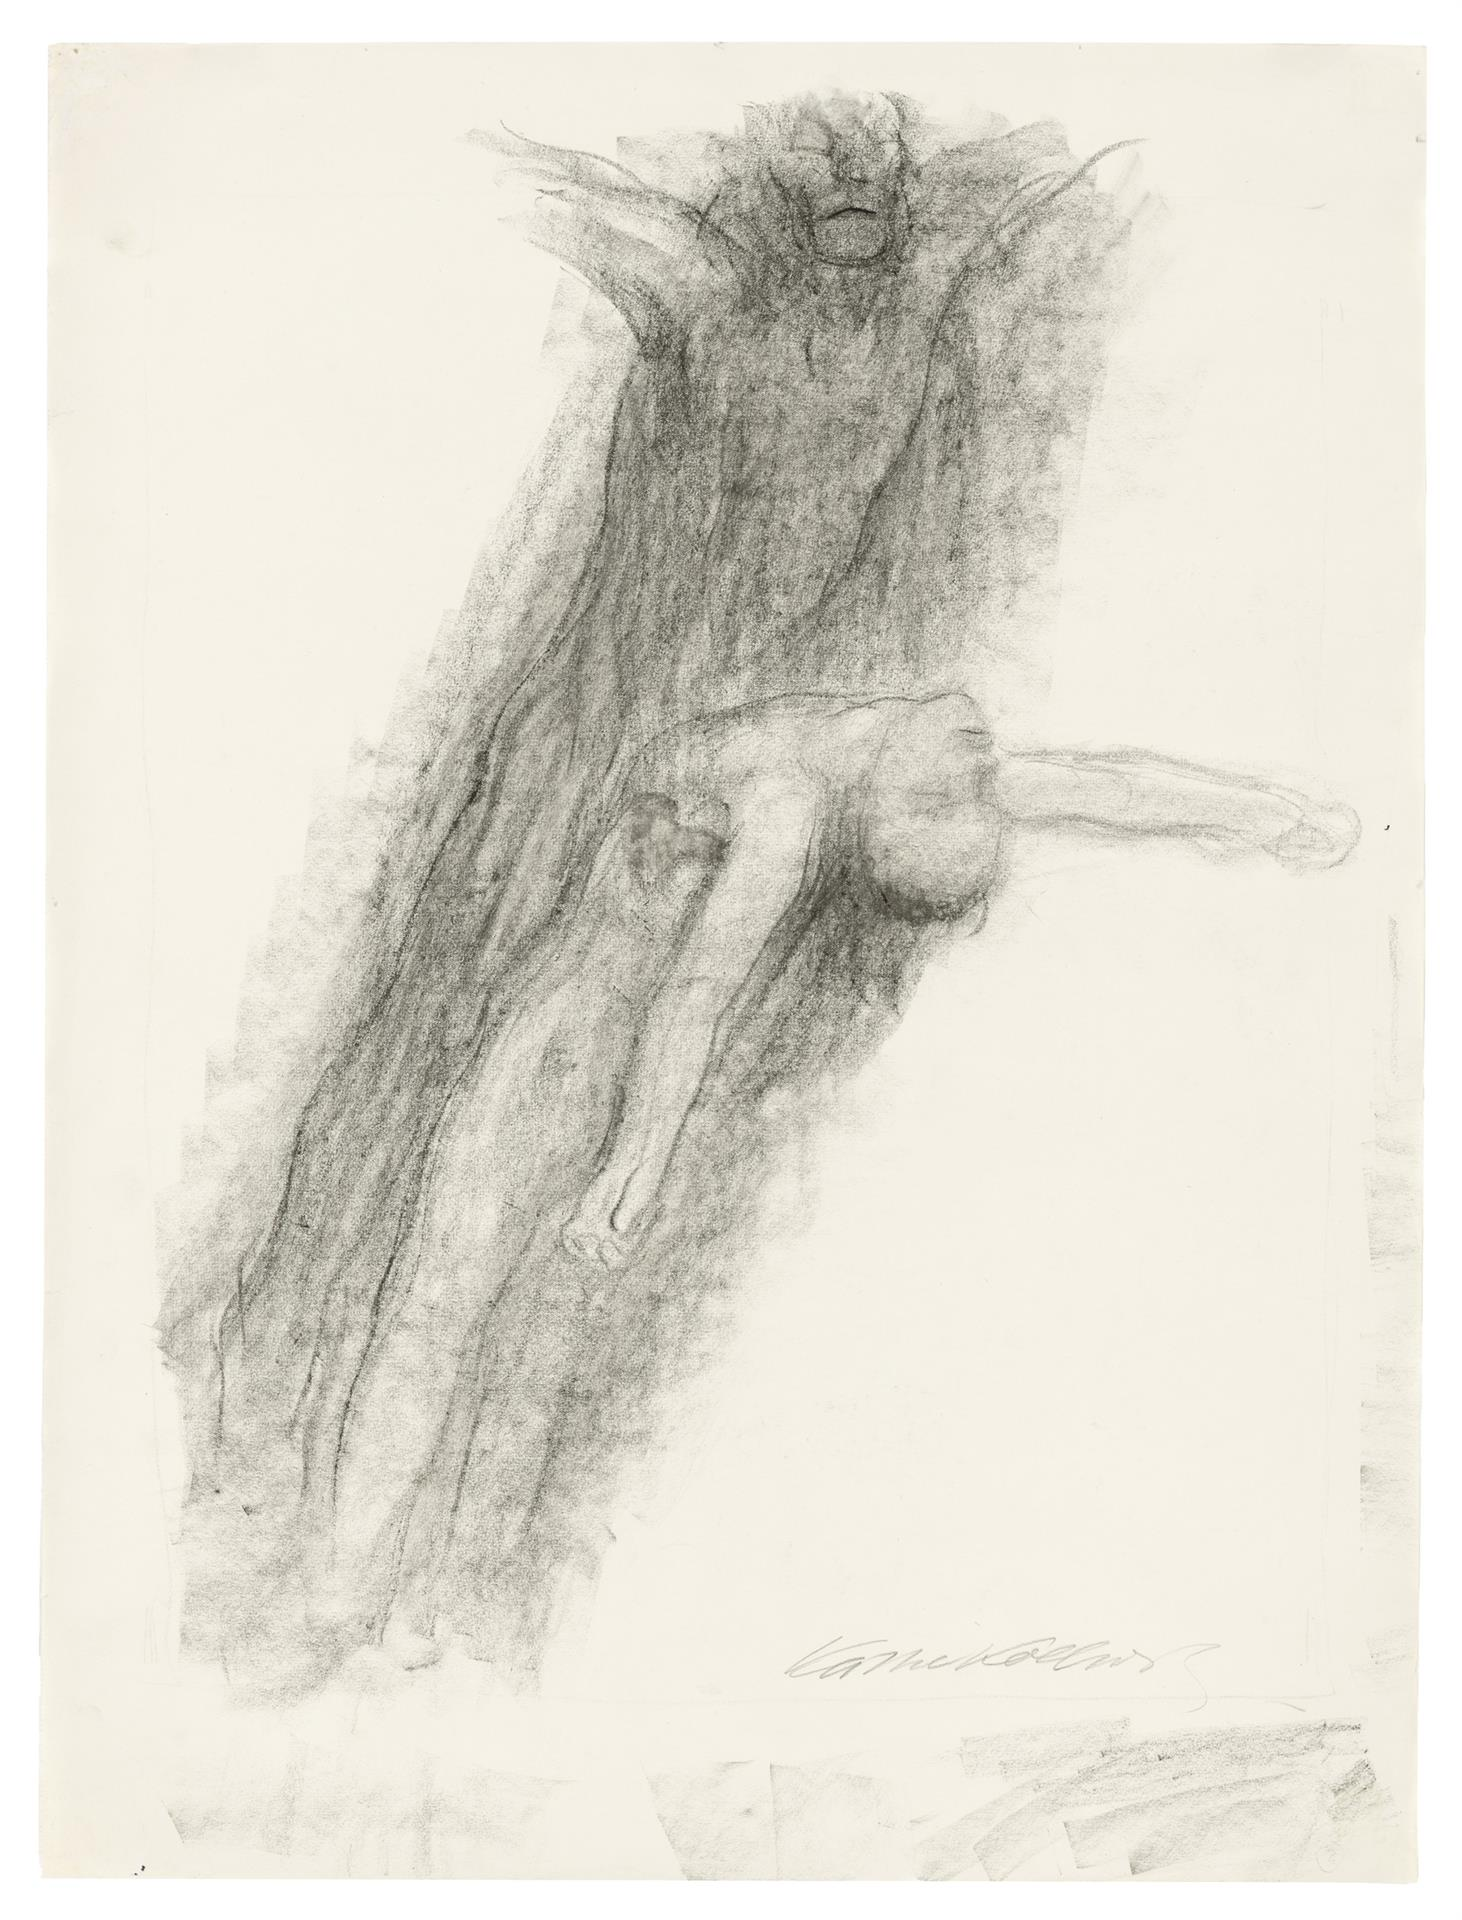 Käthe Kollwitz, Death and young Man, gliding upwards, c. 1922/1923, black crayon, blotted, on drawing paper, NT 963, Cologne Kollwitz Collection © Käthe Kollwitz Museum Köln